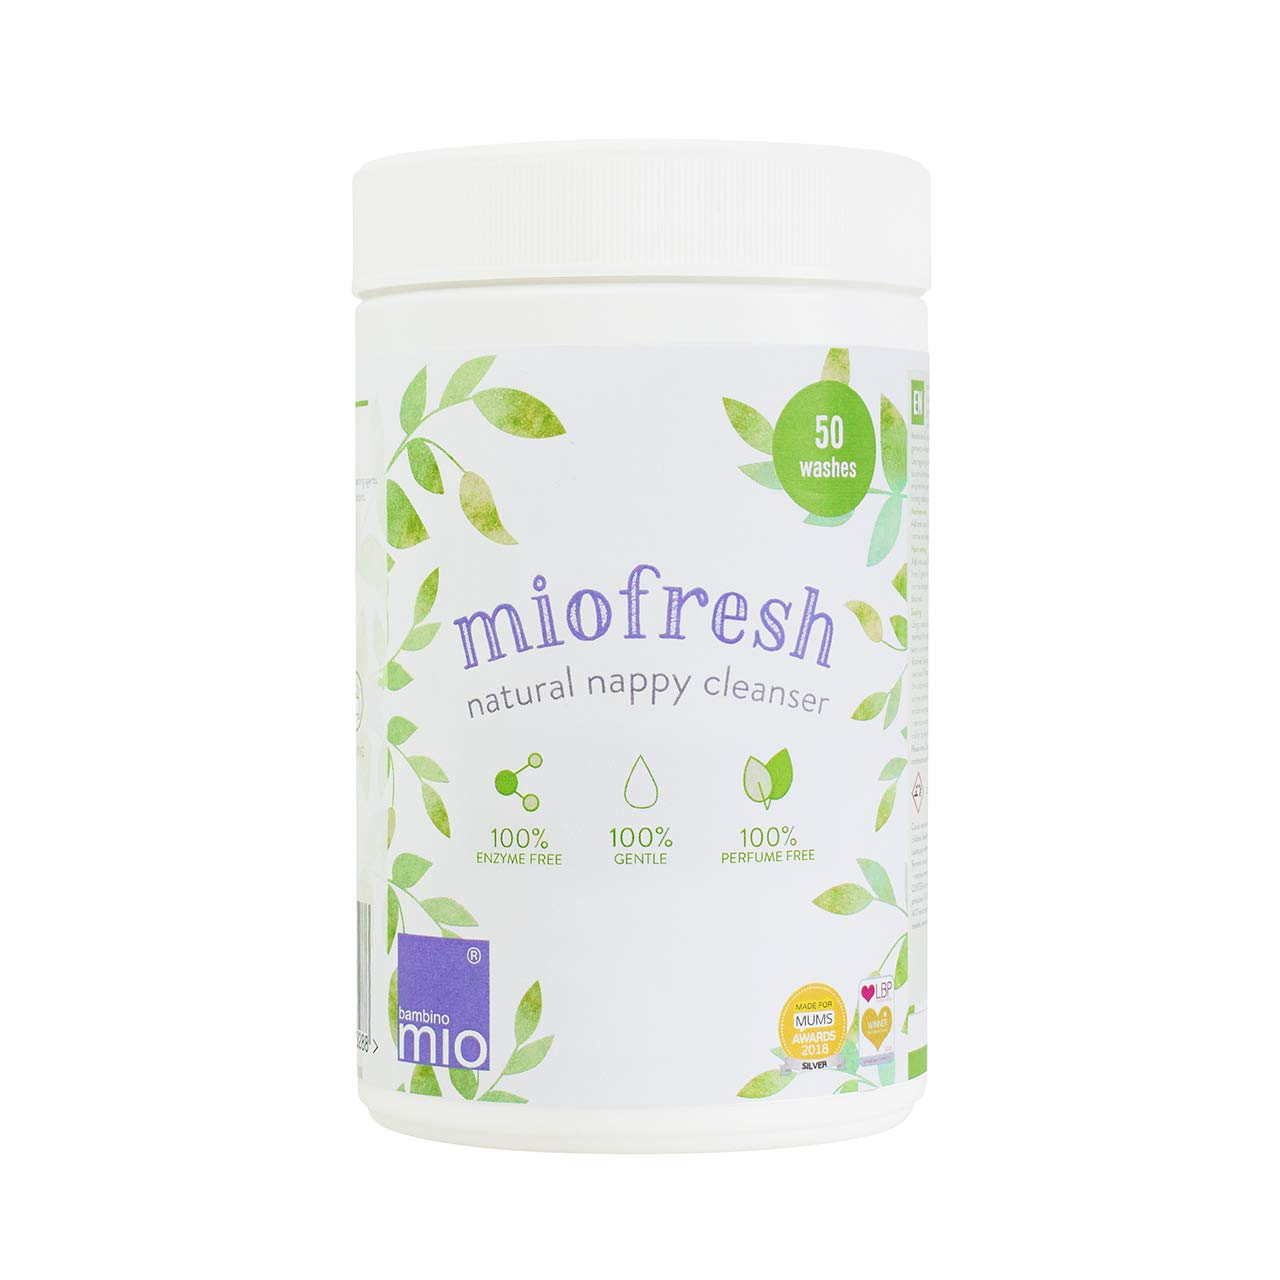 Bambino Mio, Miofresh (Diaper/Laundry Cleanser), 26 oz